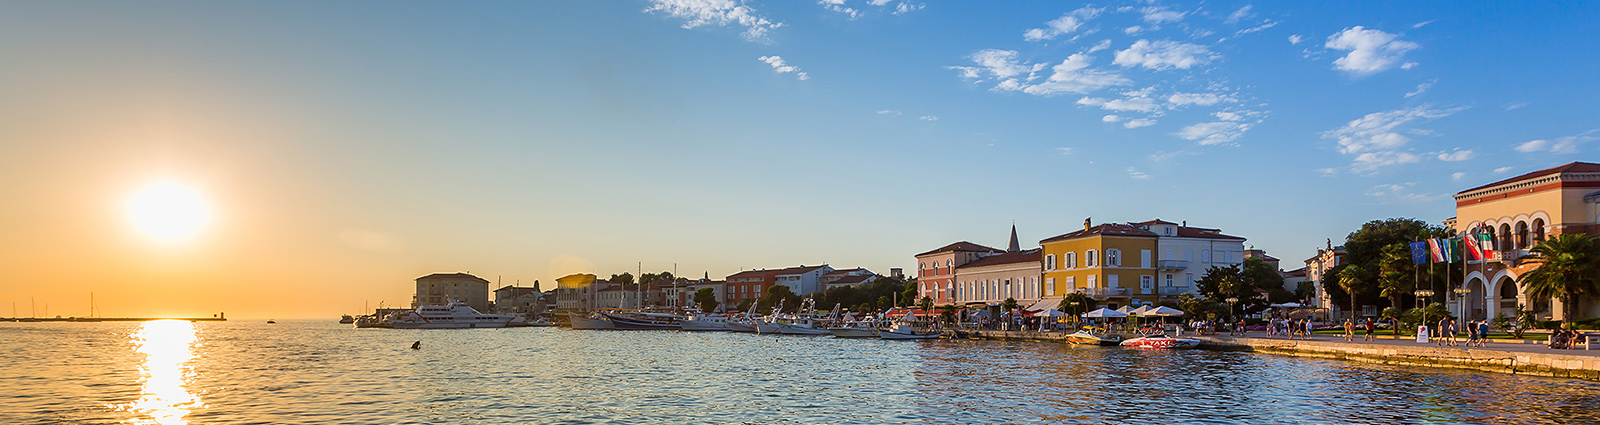 Istra, Hrvaška | Valamar Hotels & Resorts